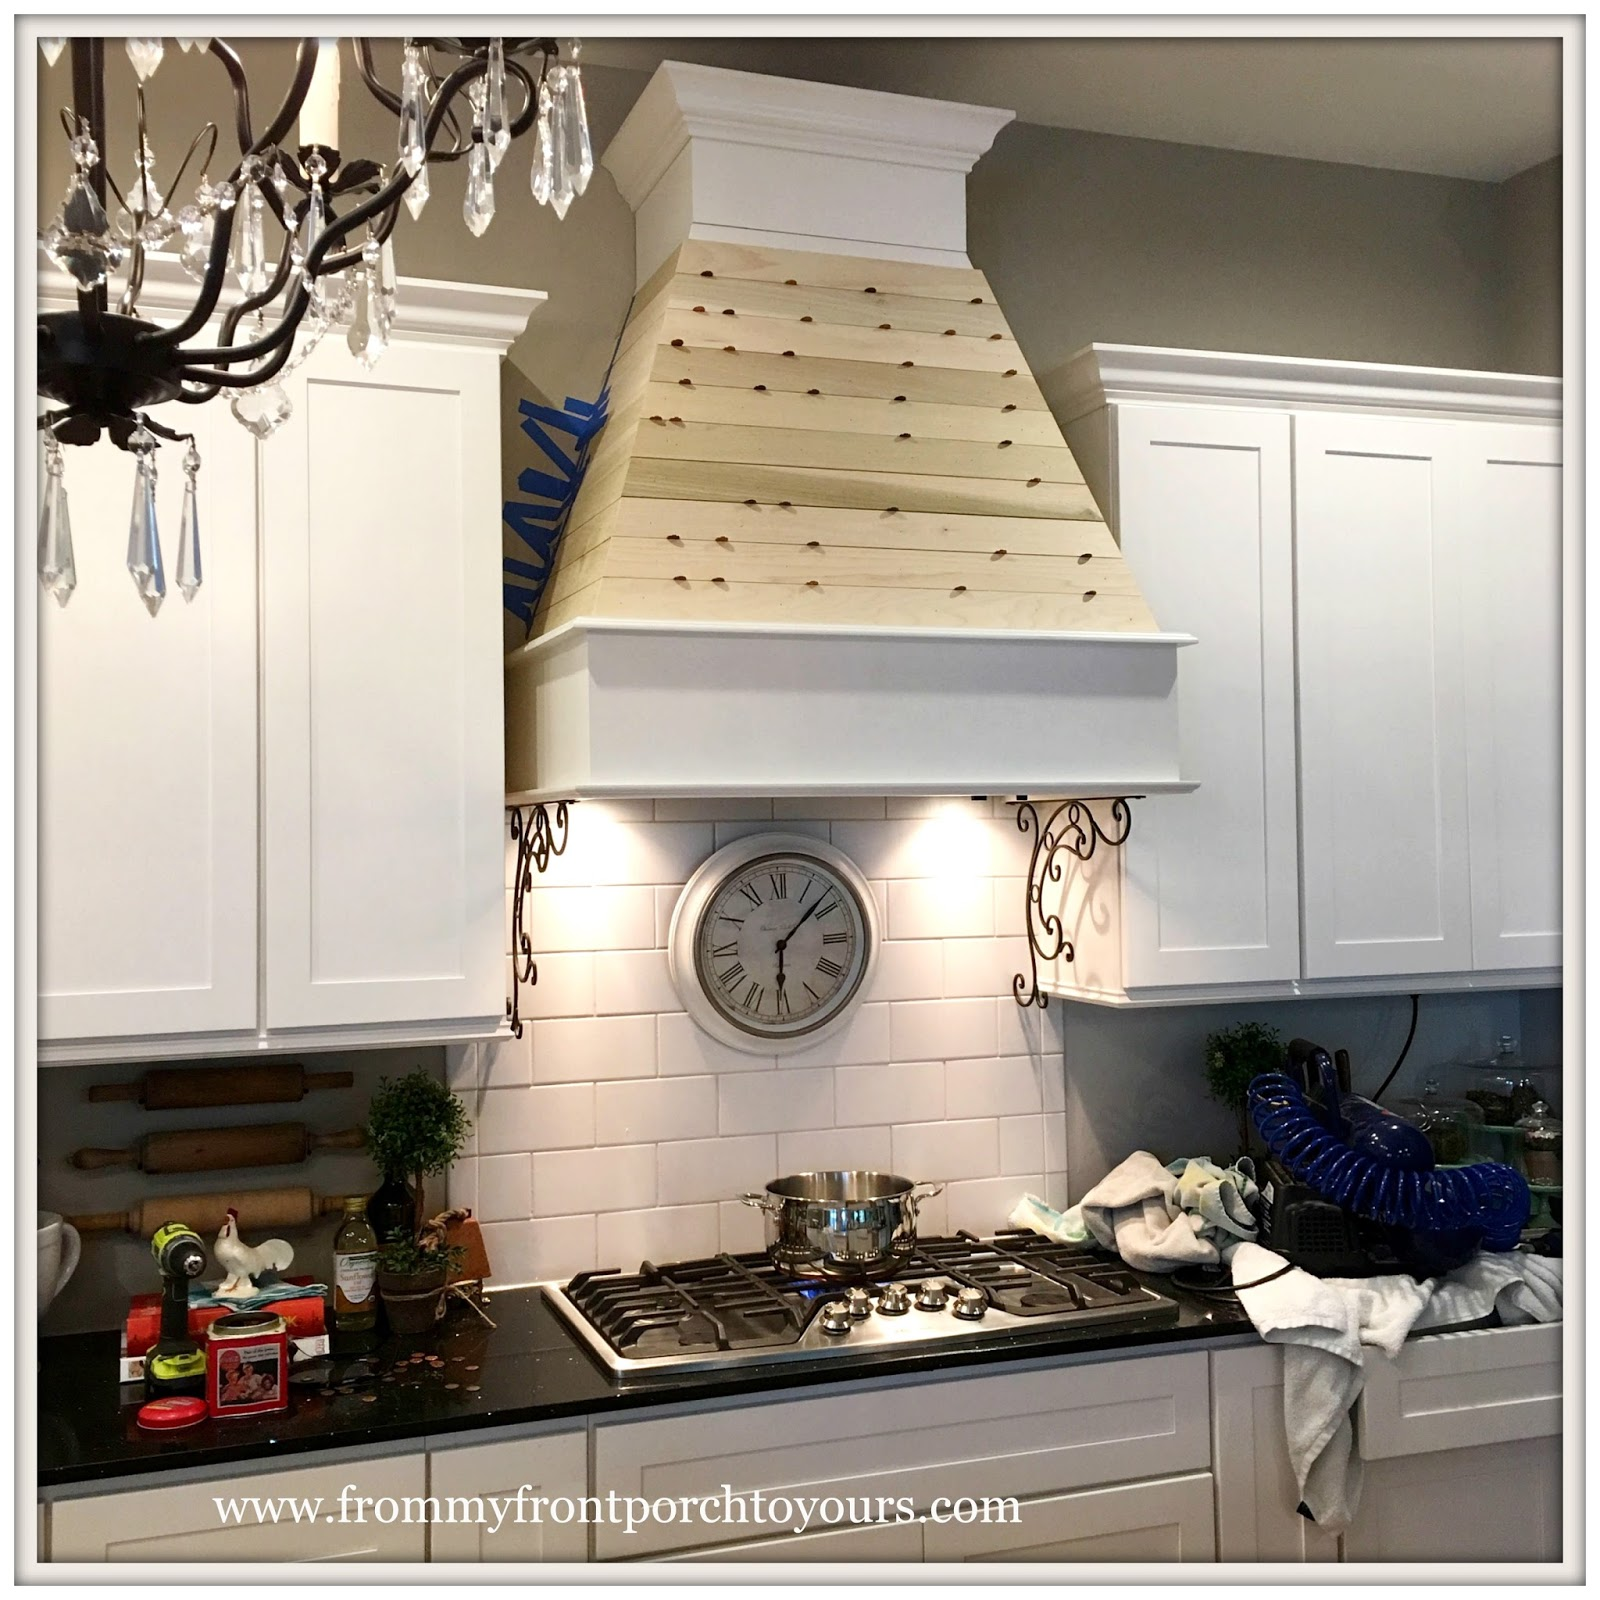 From My Front Porch To Yours: DIY Farmhouse Range Hood